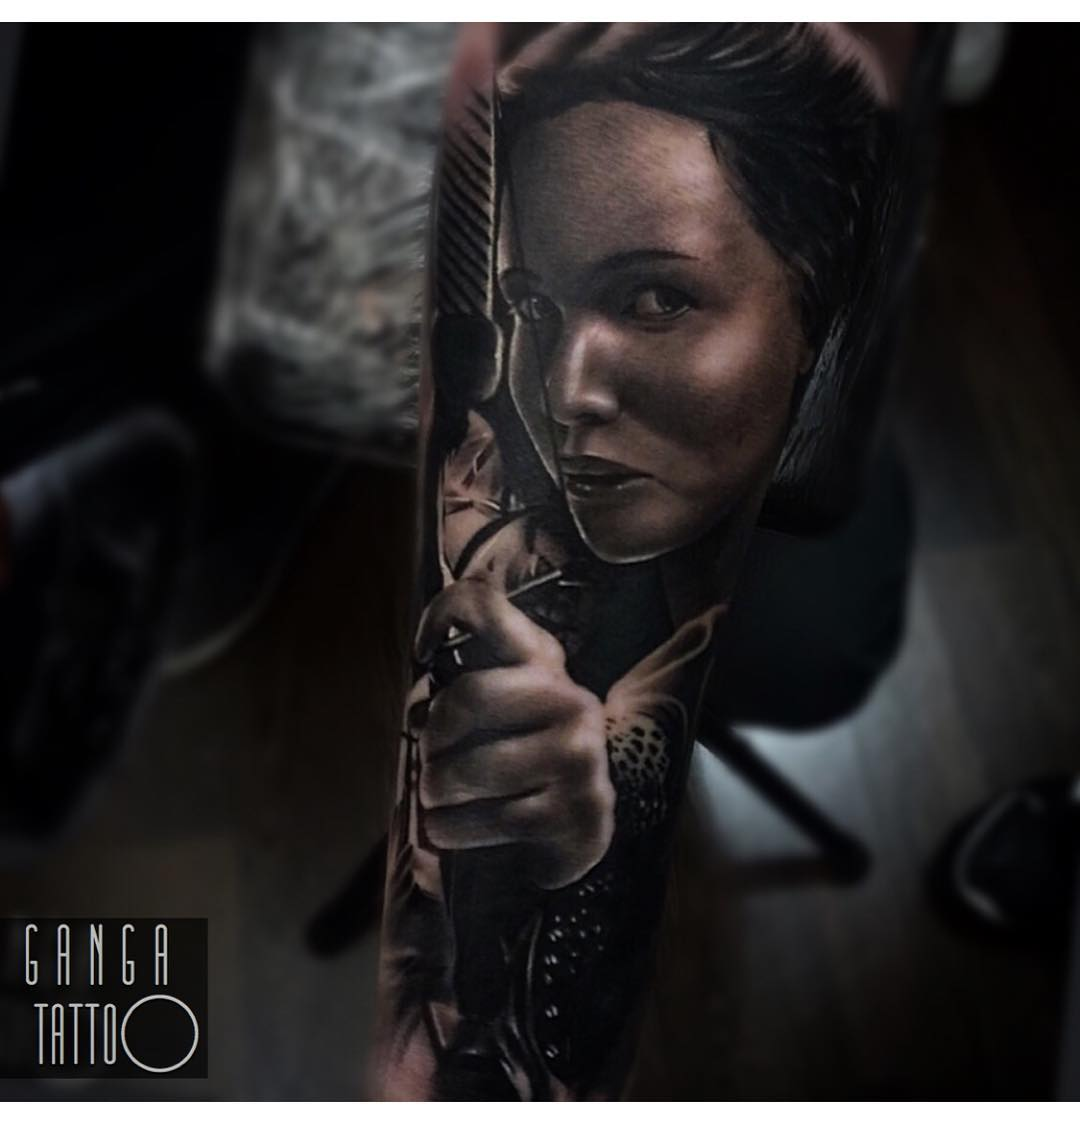 Book lovers tattoo of Katniss from Hunger Games